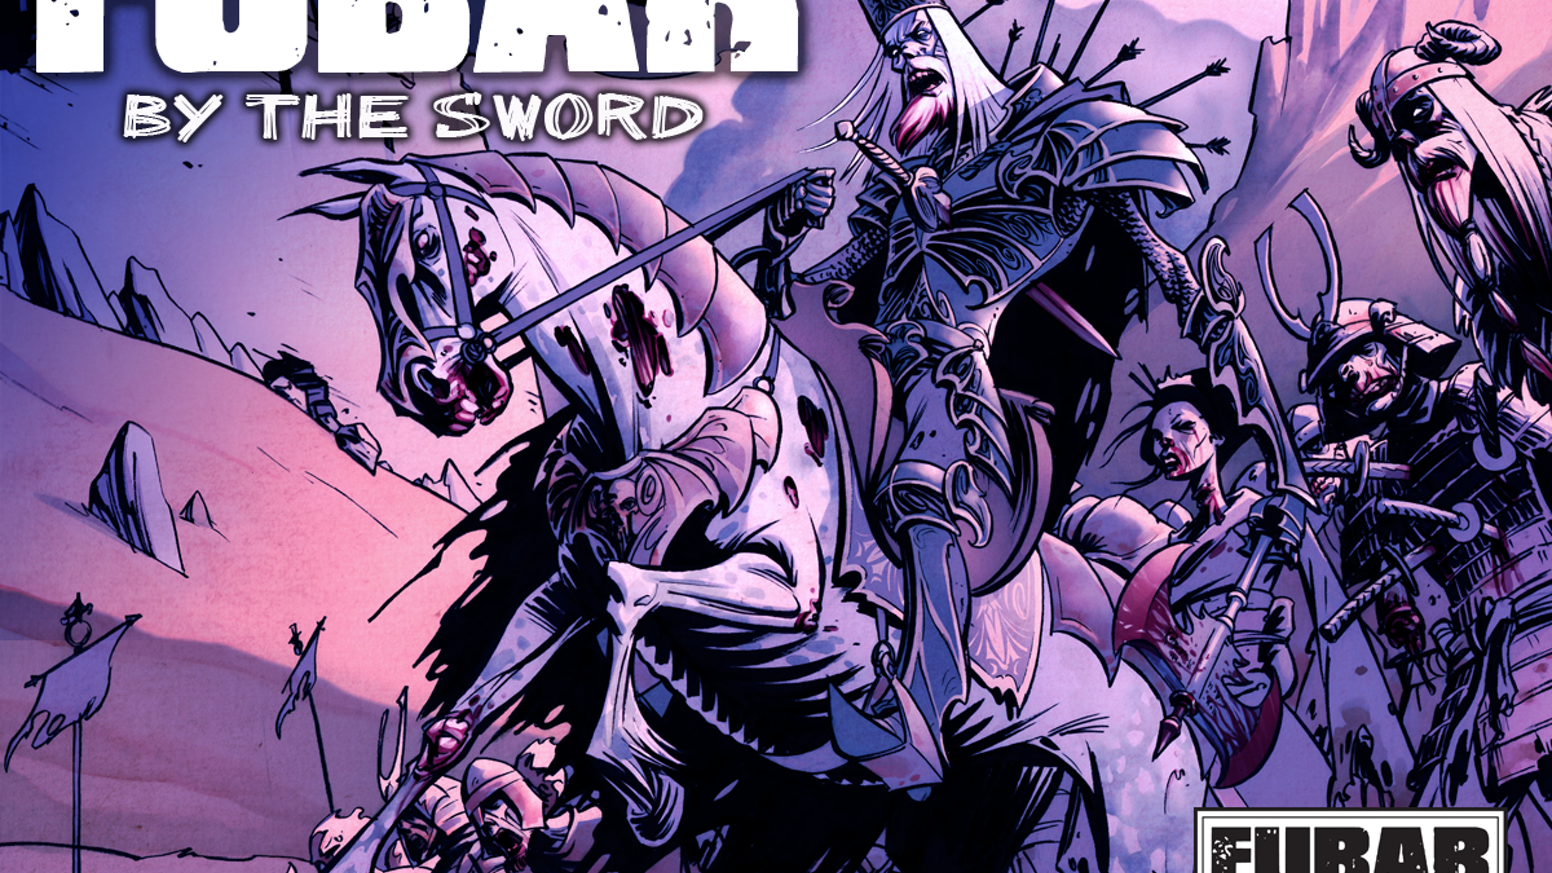 FUBAR: By The Sword spreads throughout ALL of world history in this next installment of the historical zombie anthology FUBAR.